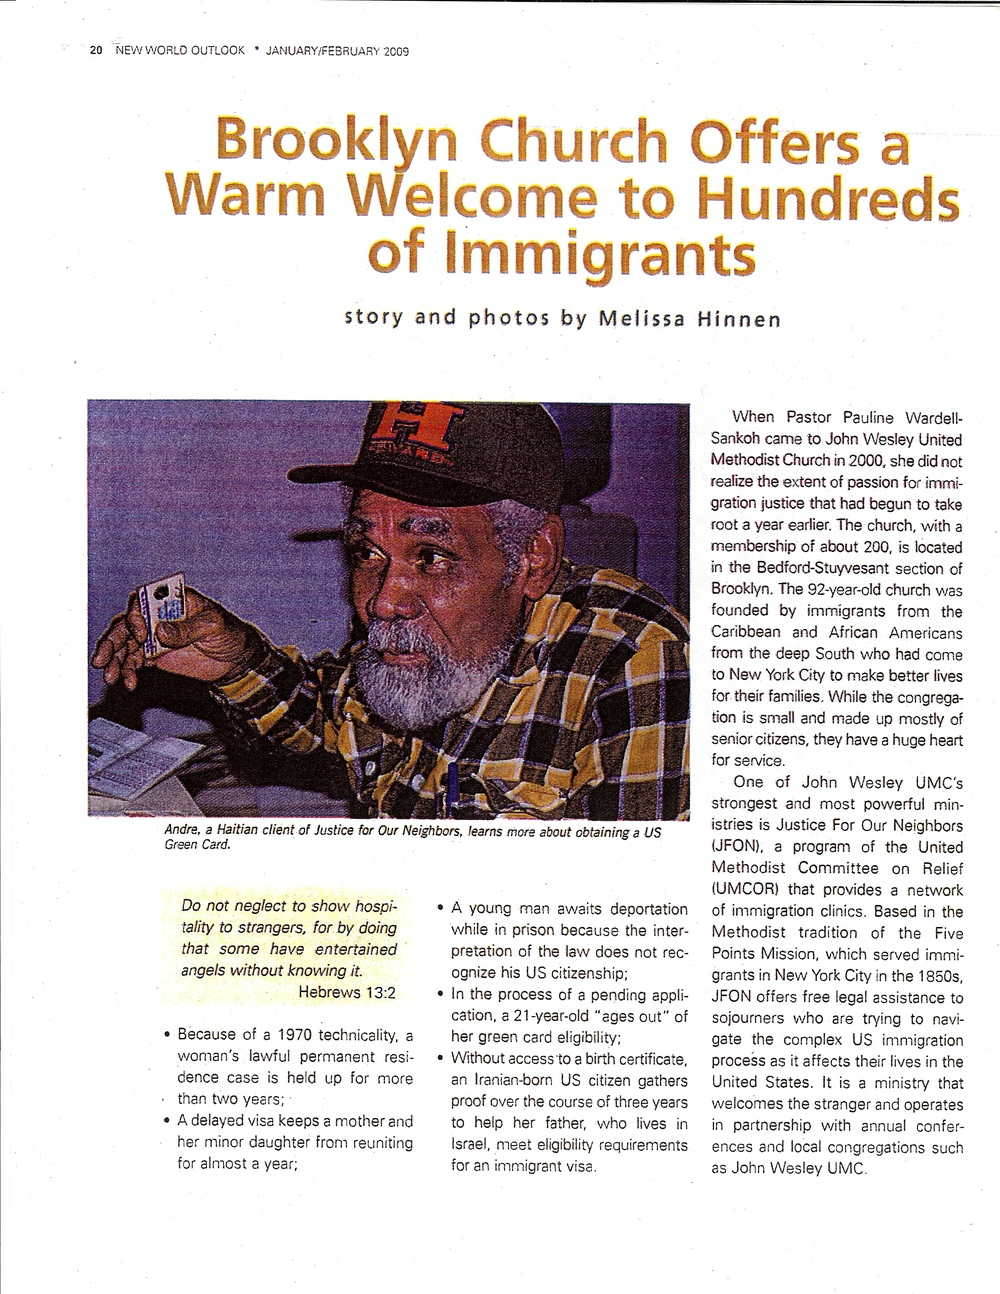 JFON New York Outlook article Feb 09.jpg